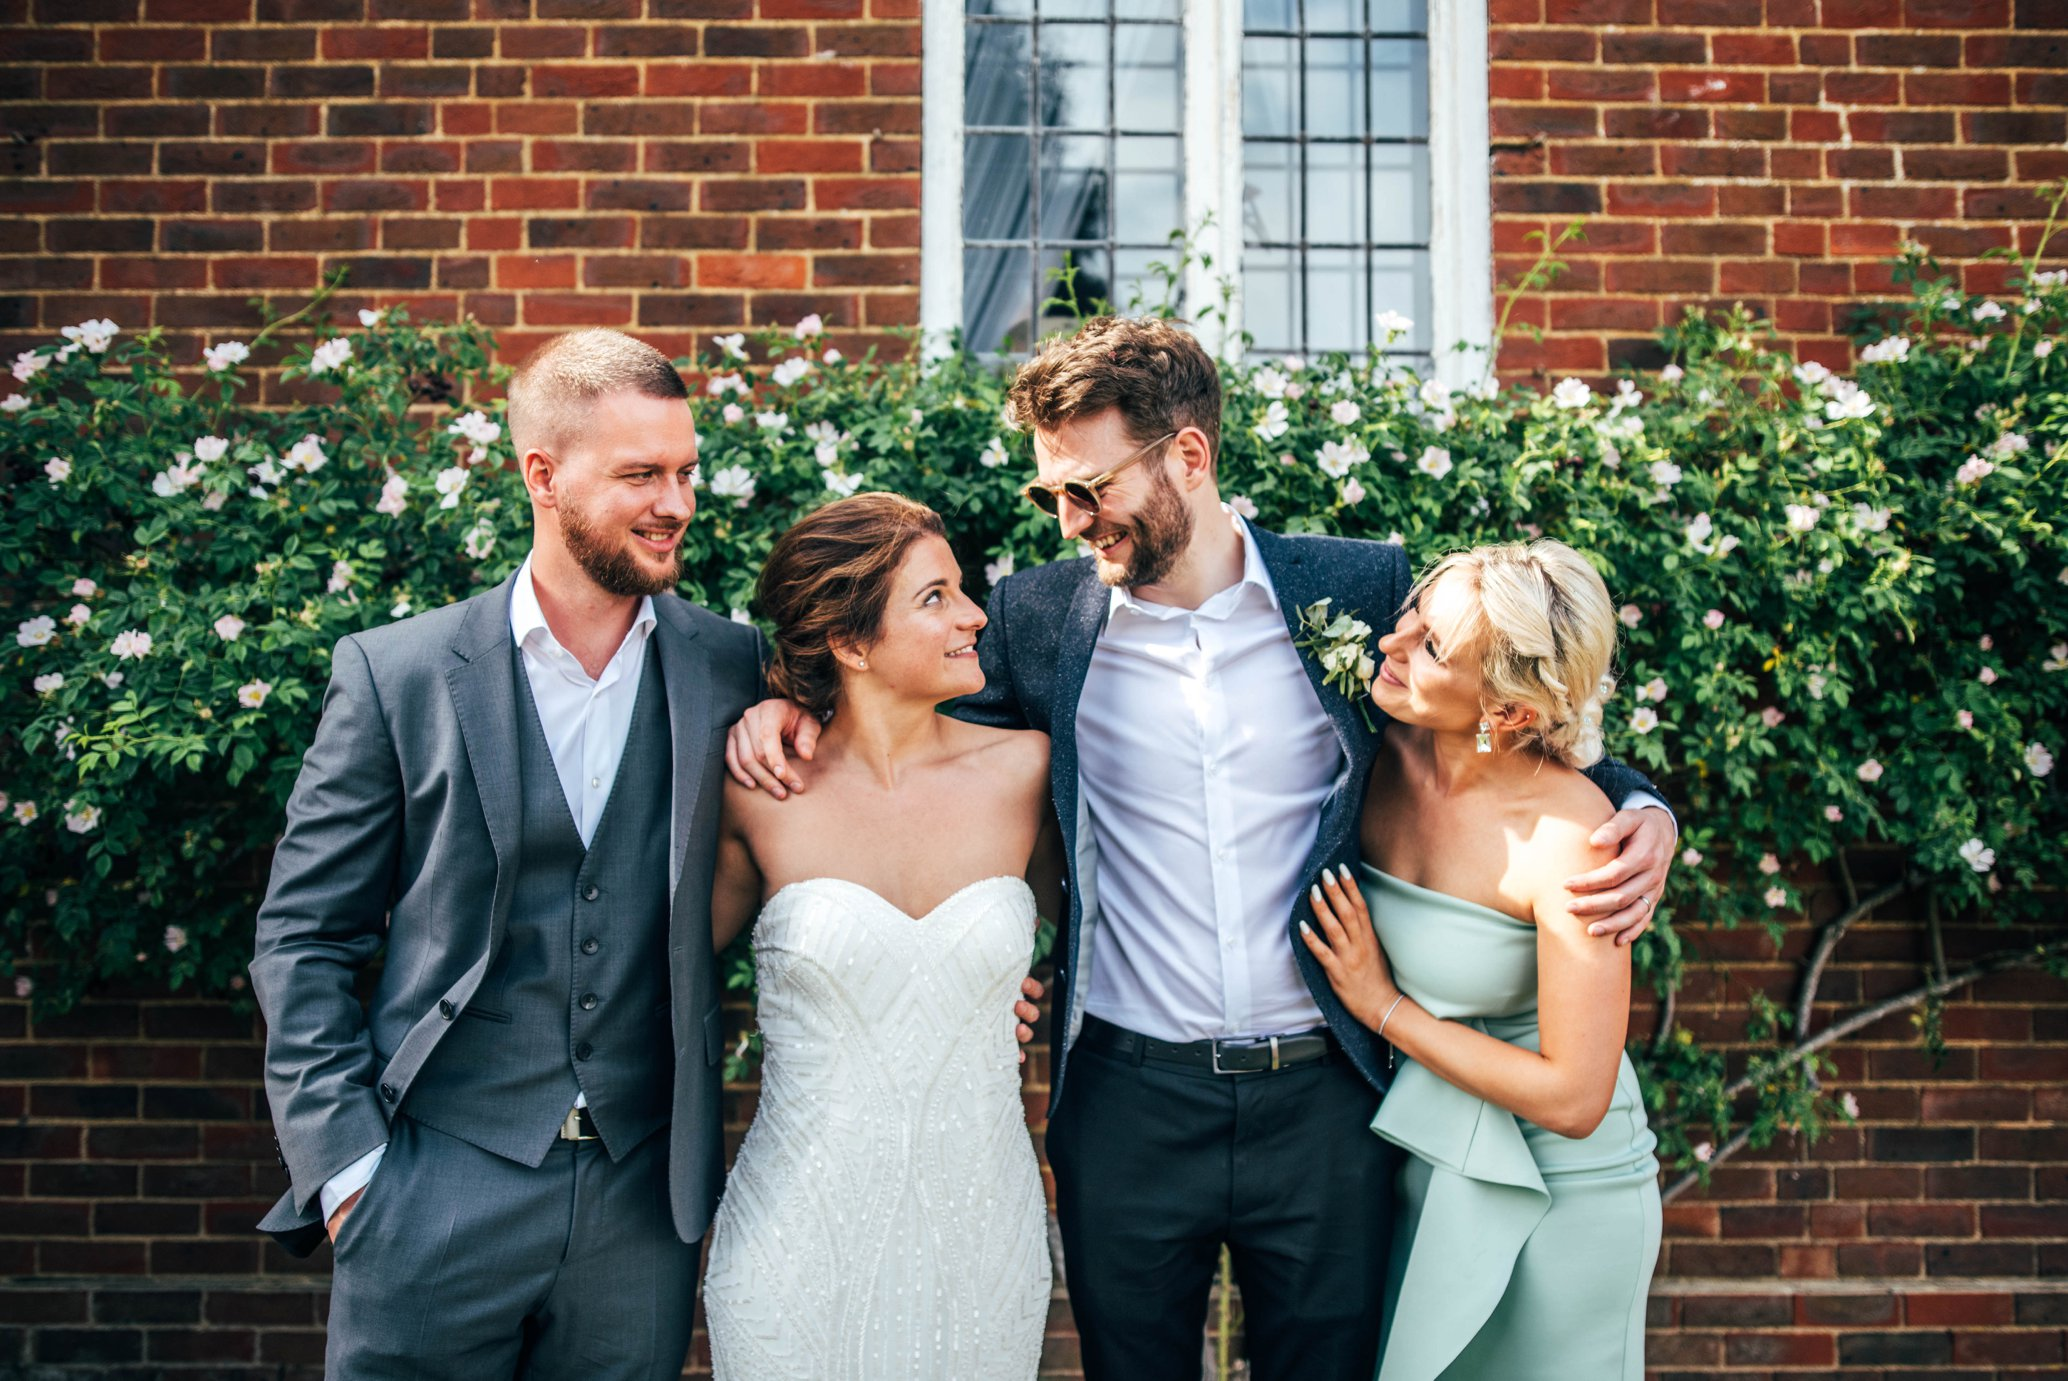 DIY Village Hall Wedding Whites and Greens with Festoons. CharterHouse School Godalming & Chichester Hall Witley Essex Documentary Wedding Photographer